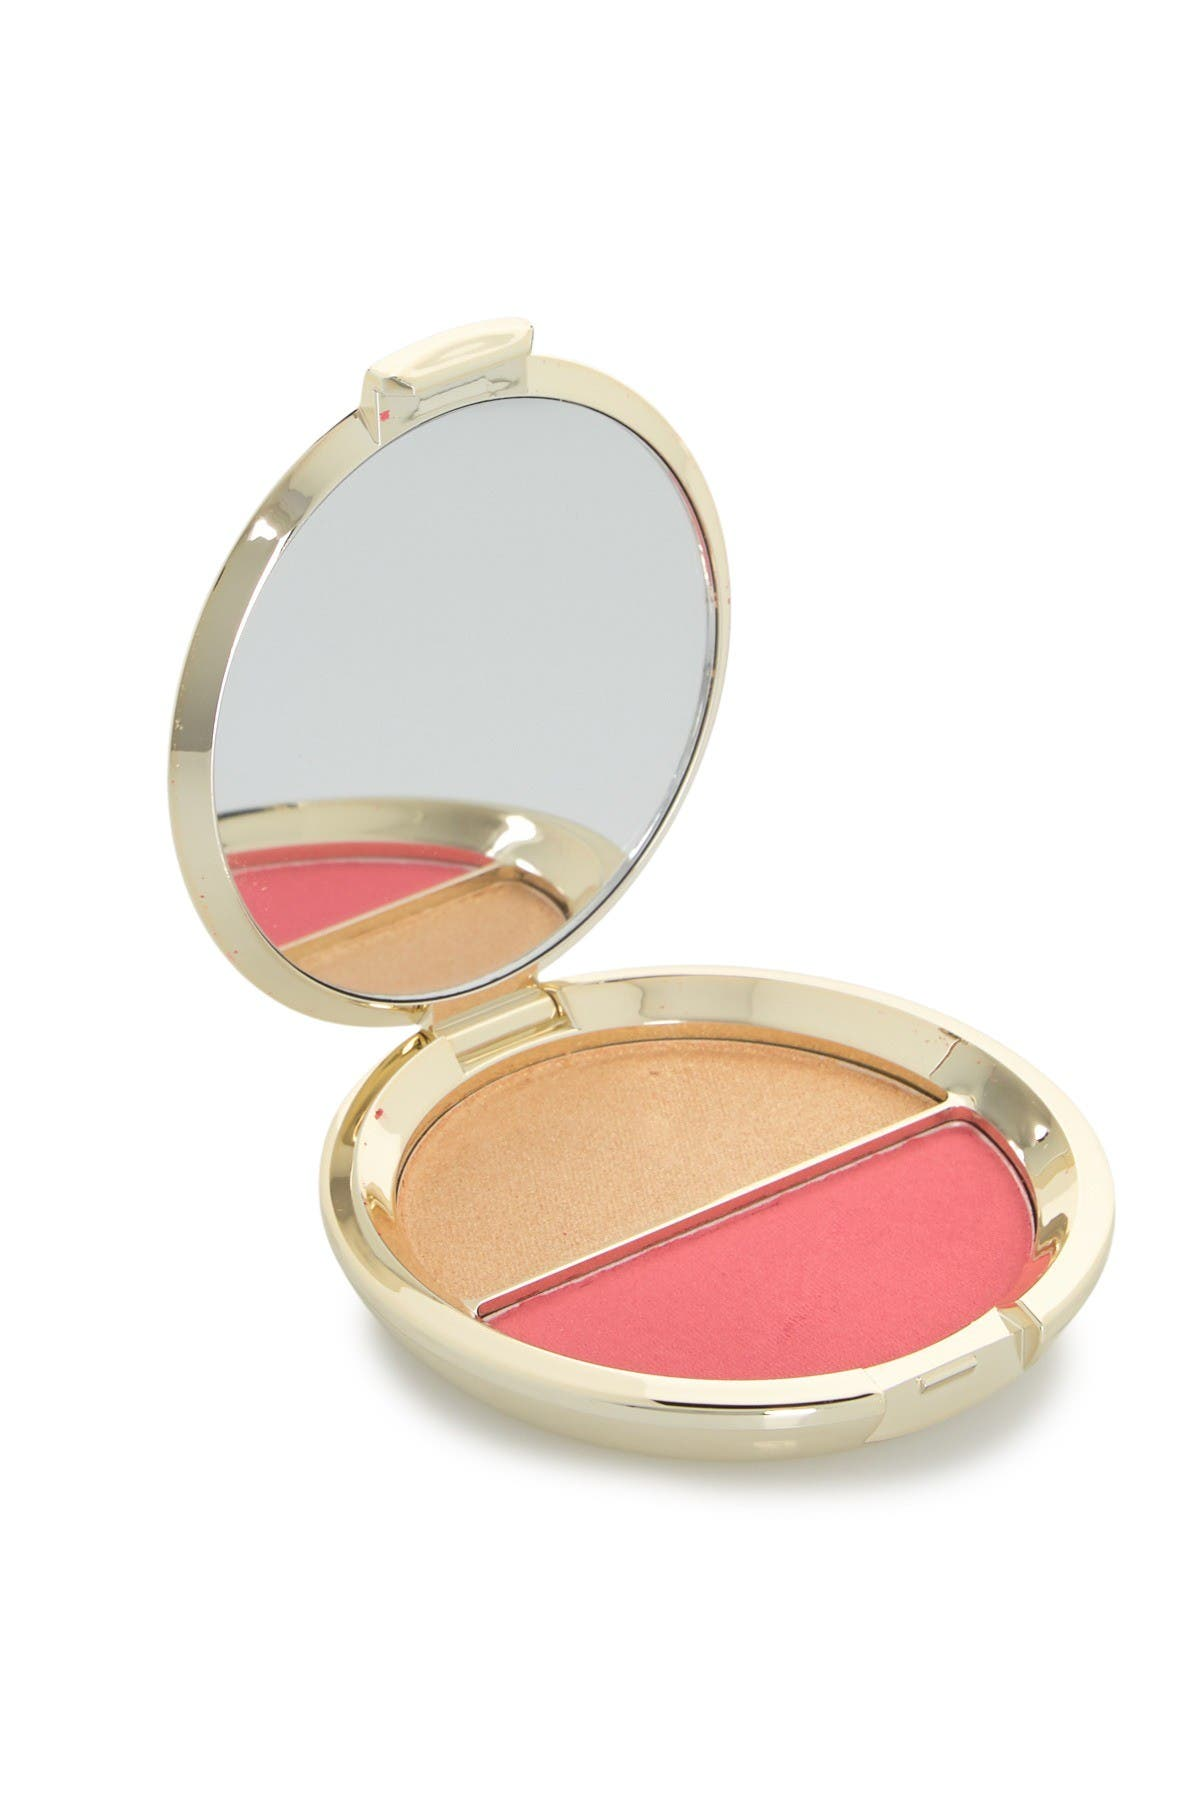 Image of BECCA Cosmetics x Jaclyn Hill Shimmering Skin Perfector Mineral Blush Duo Champagne Splits